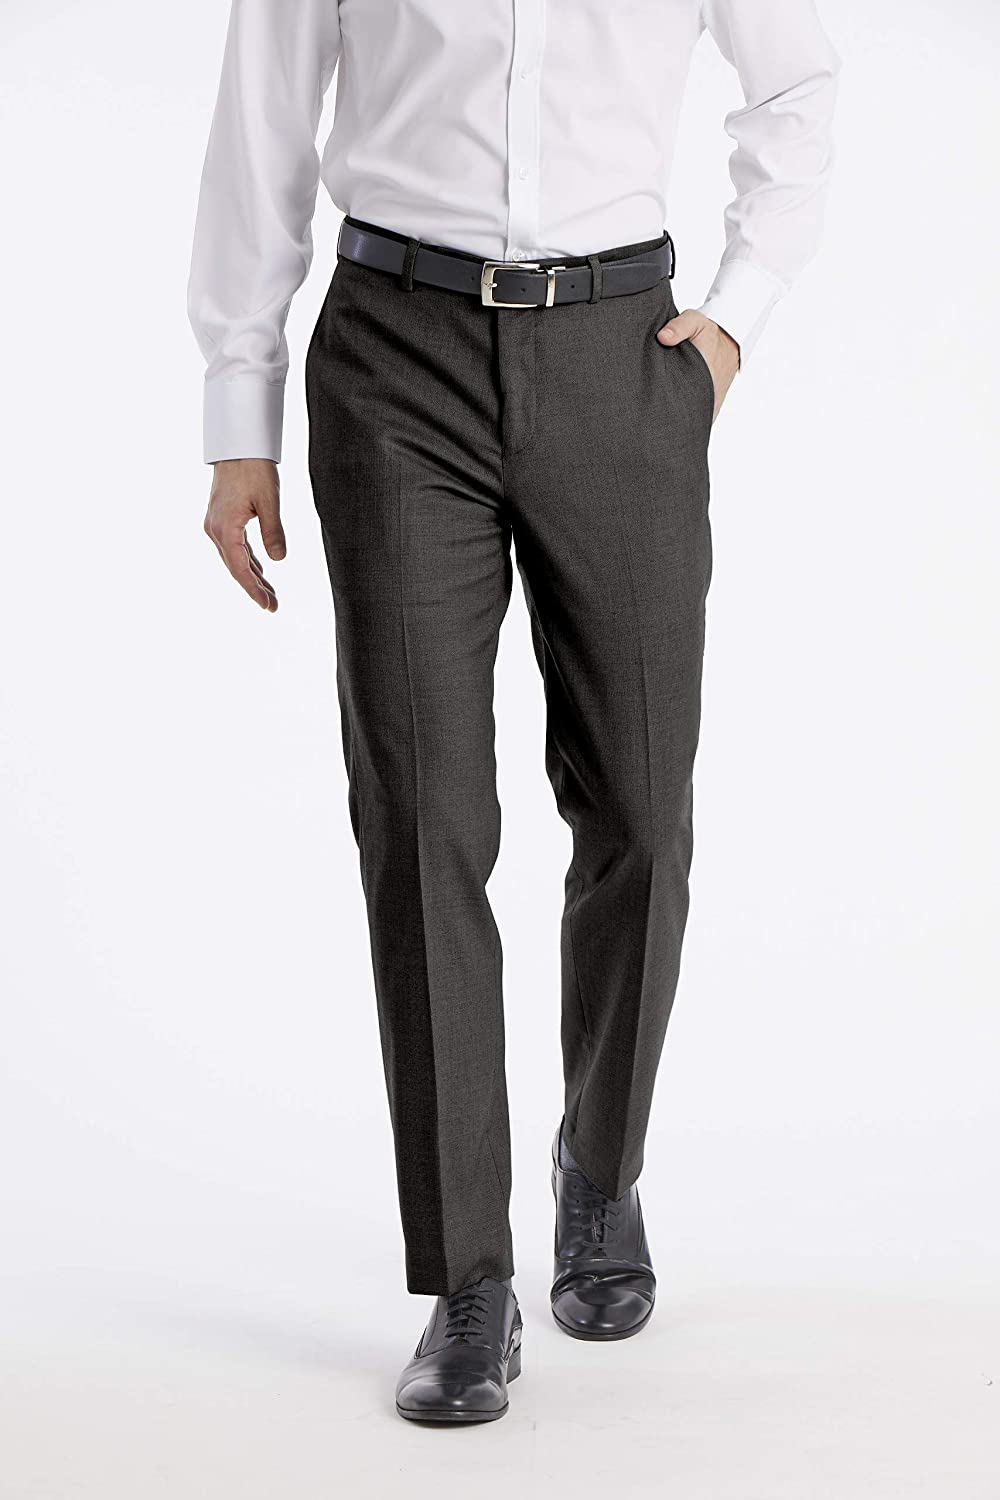 9e88fdcf Calvin Klein Men's X Performance Slim Fit Flat Front Dress Pant at Amazon Men's  Clothing store: